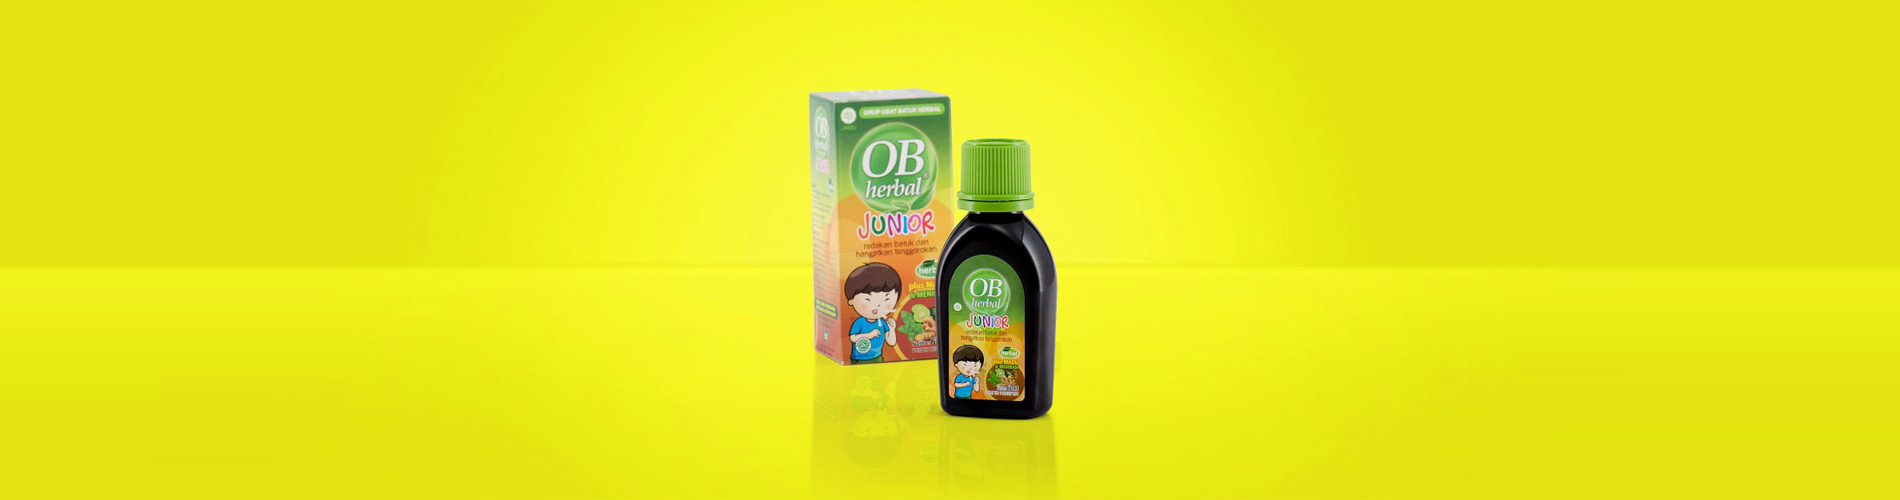 OB Herbal Junior